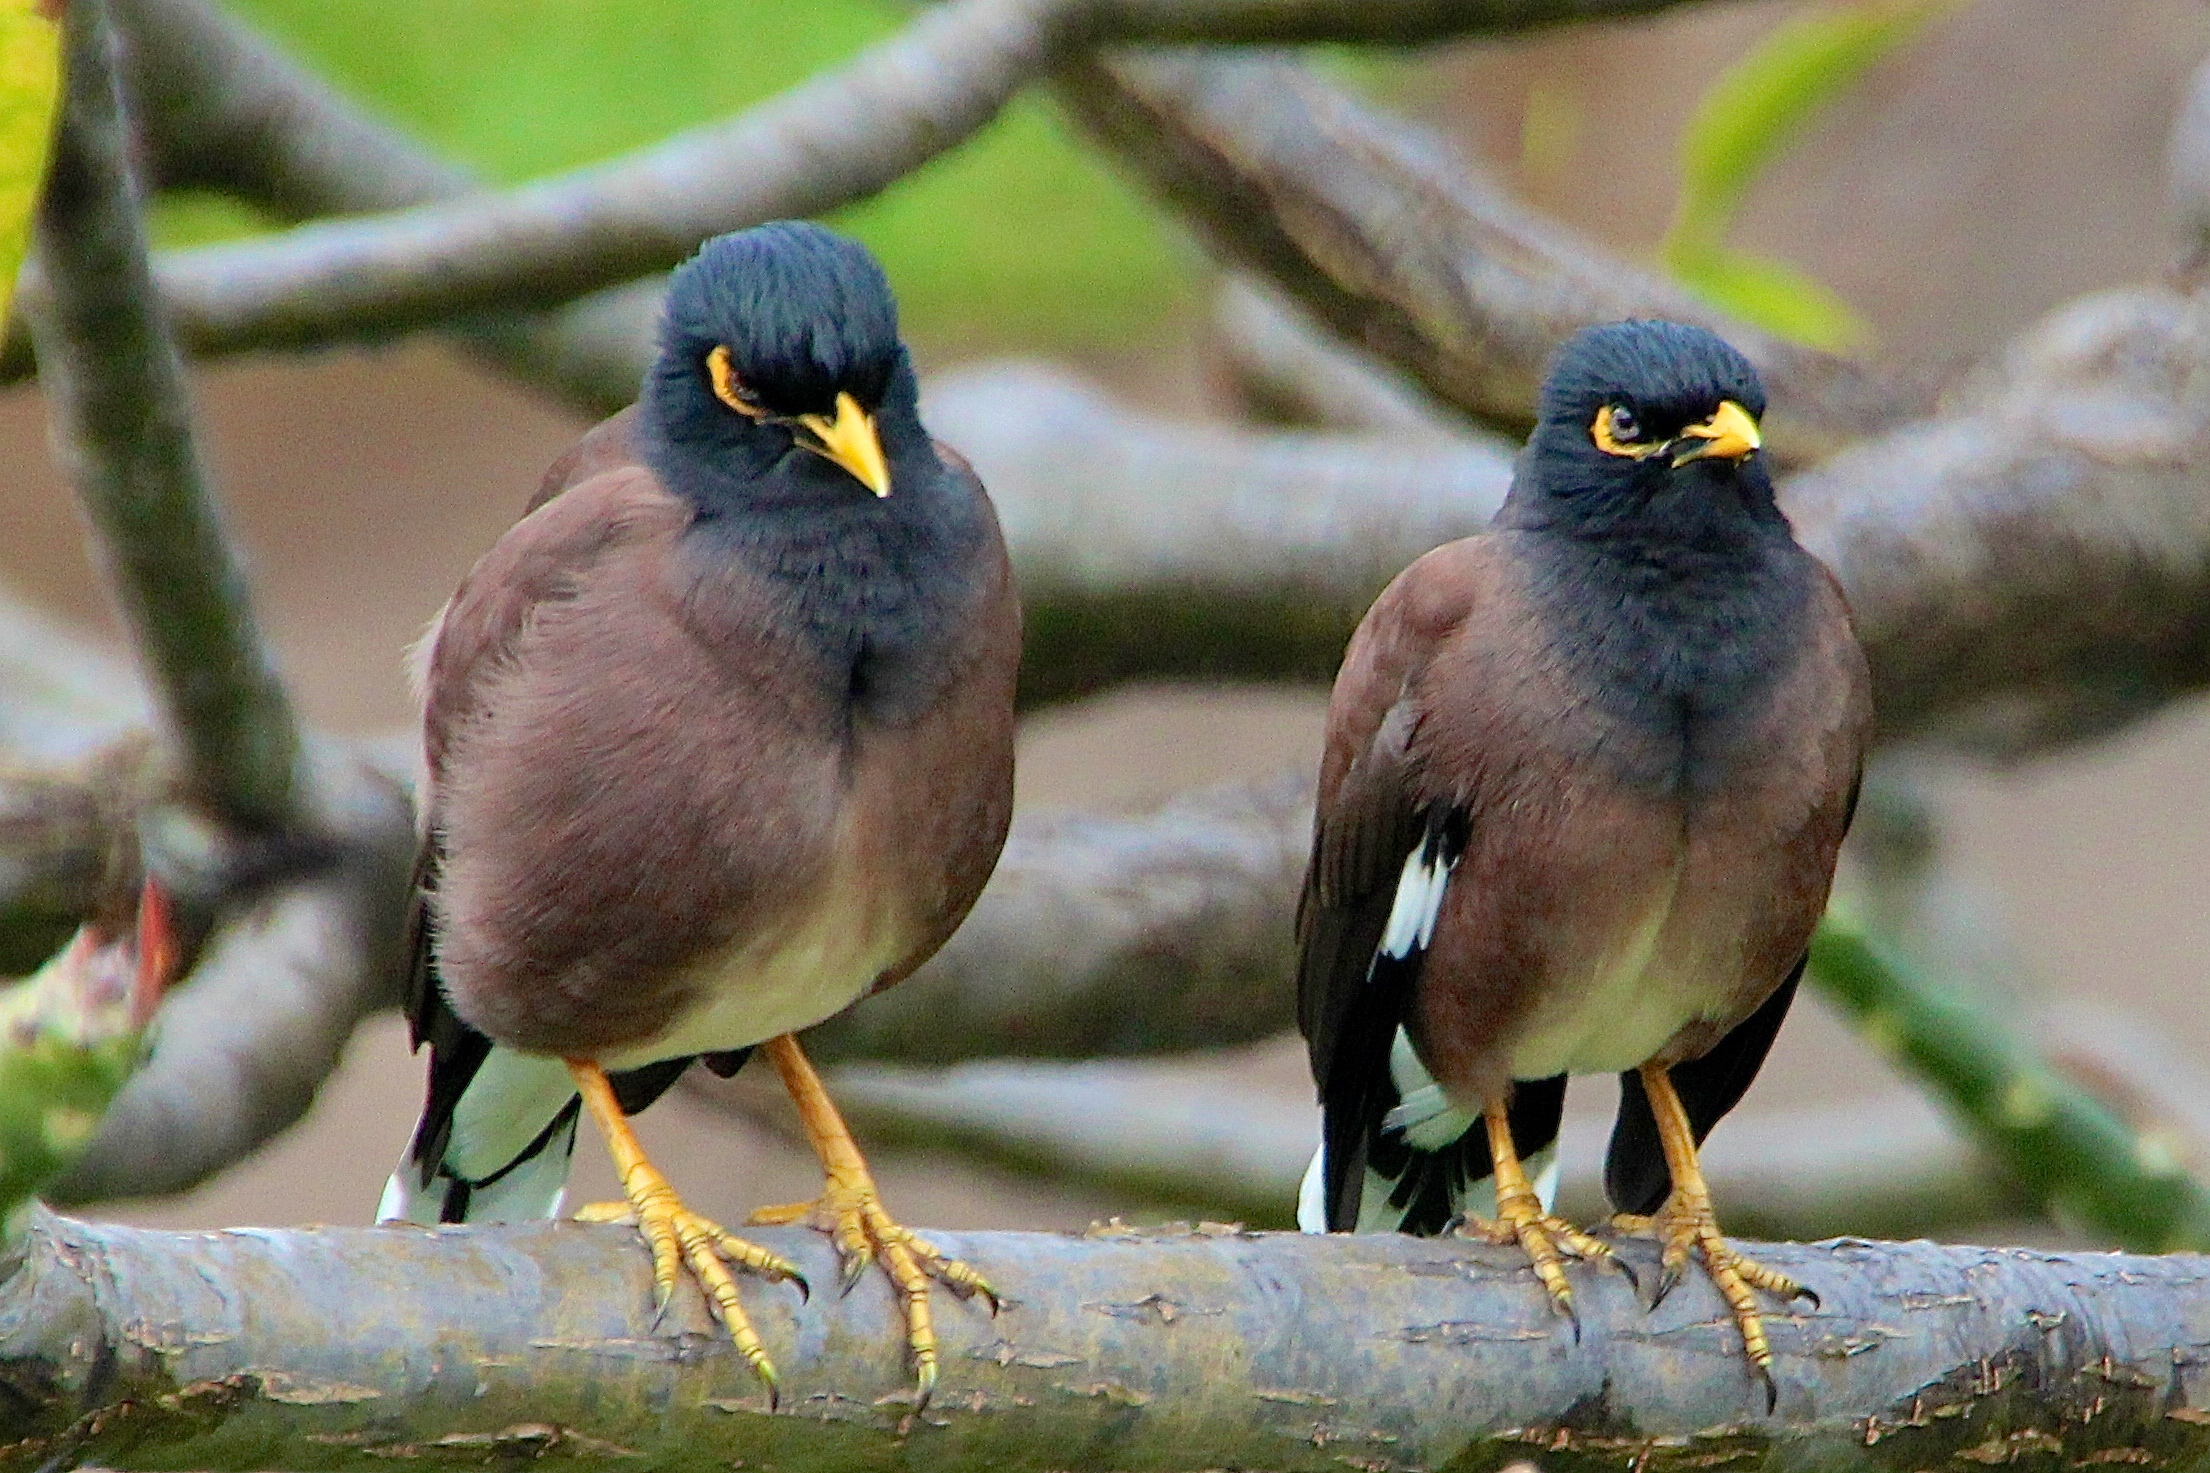 A Few of Hawaii's Favorite Birds (26): Mimicking Maui's ... - photo#19